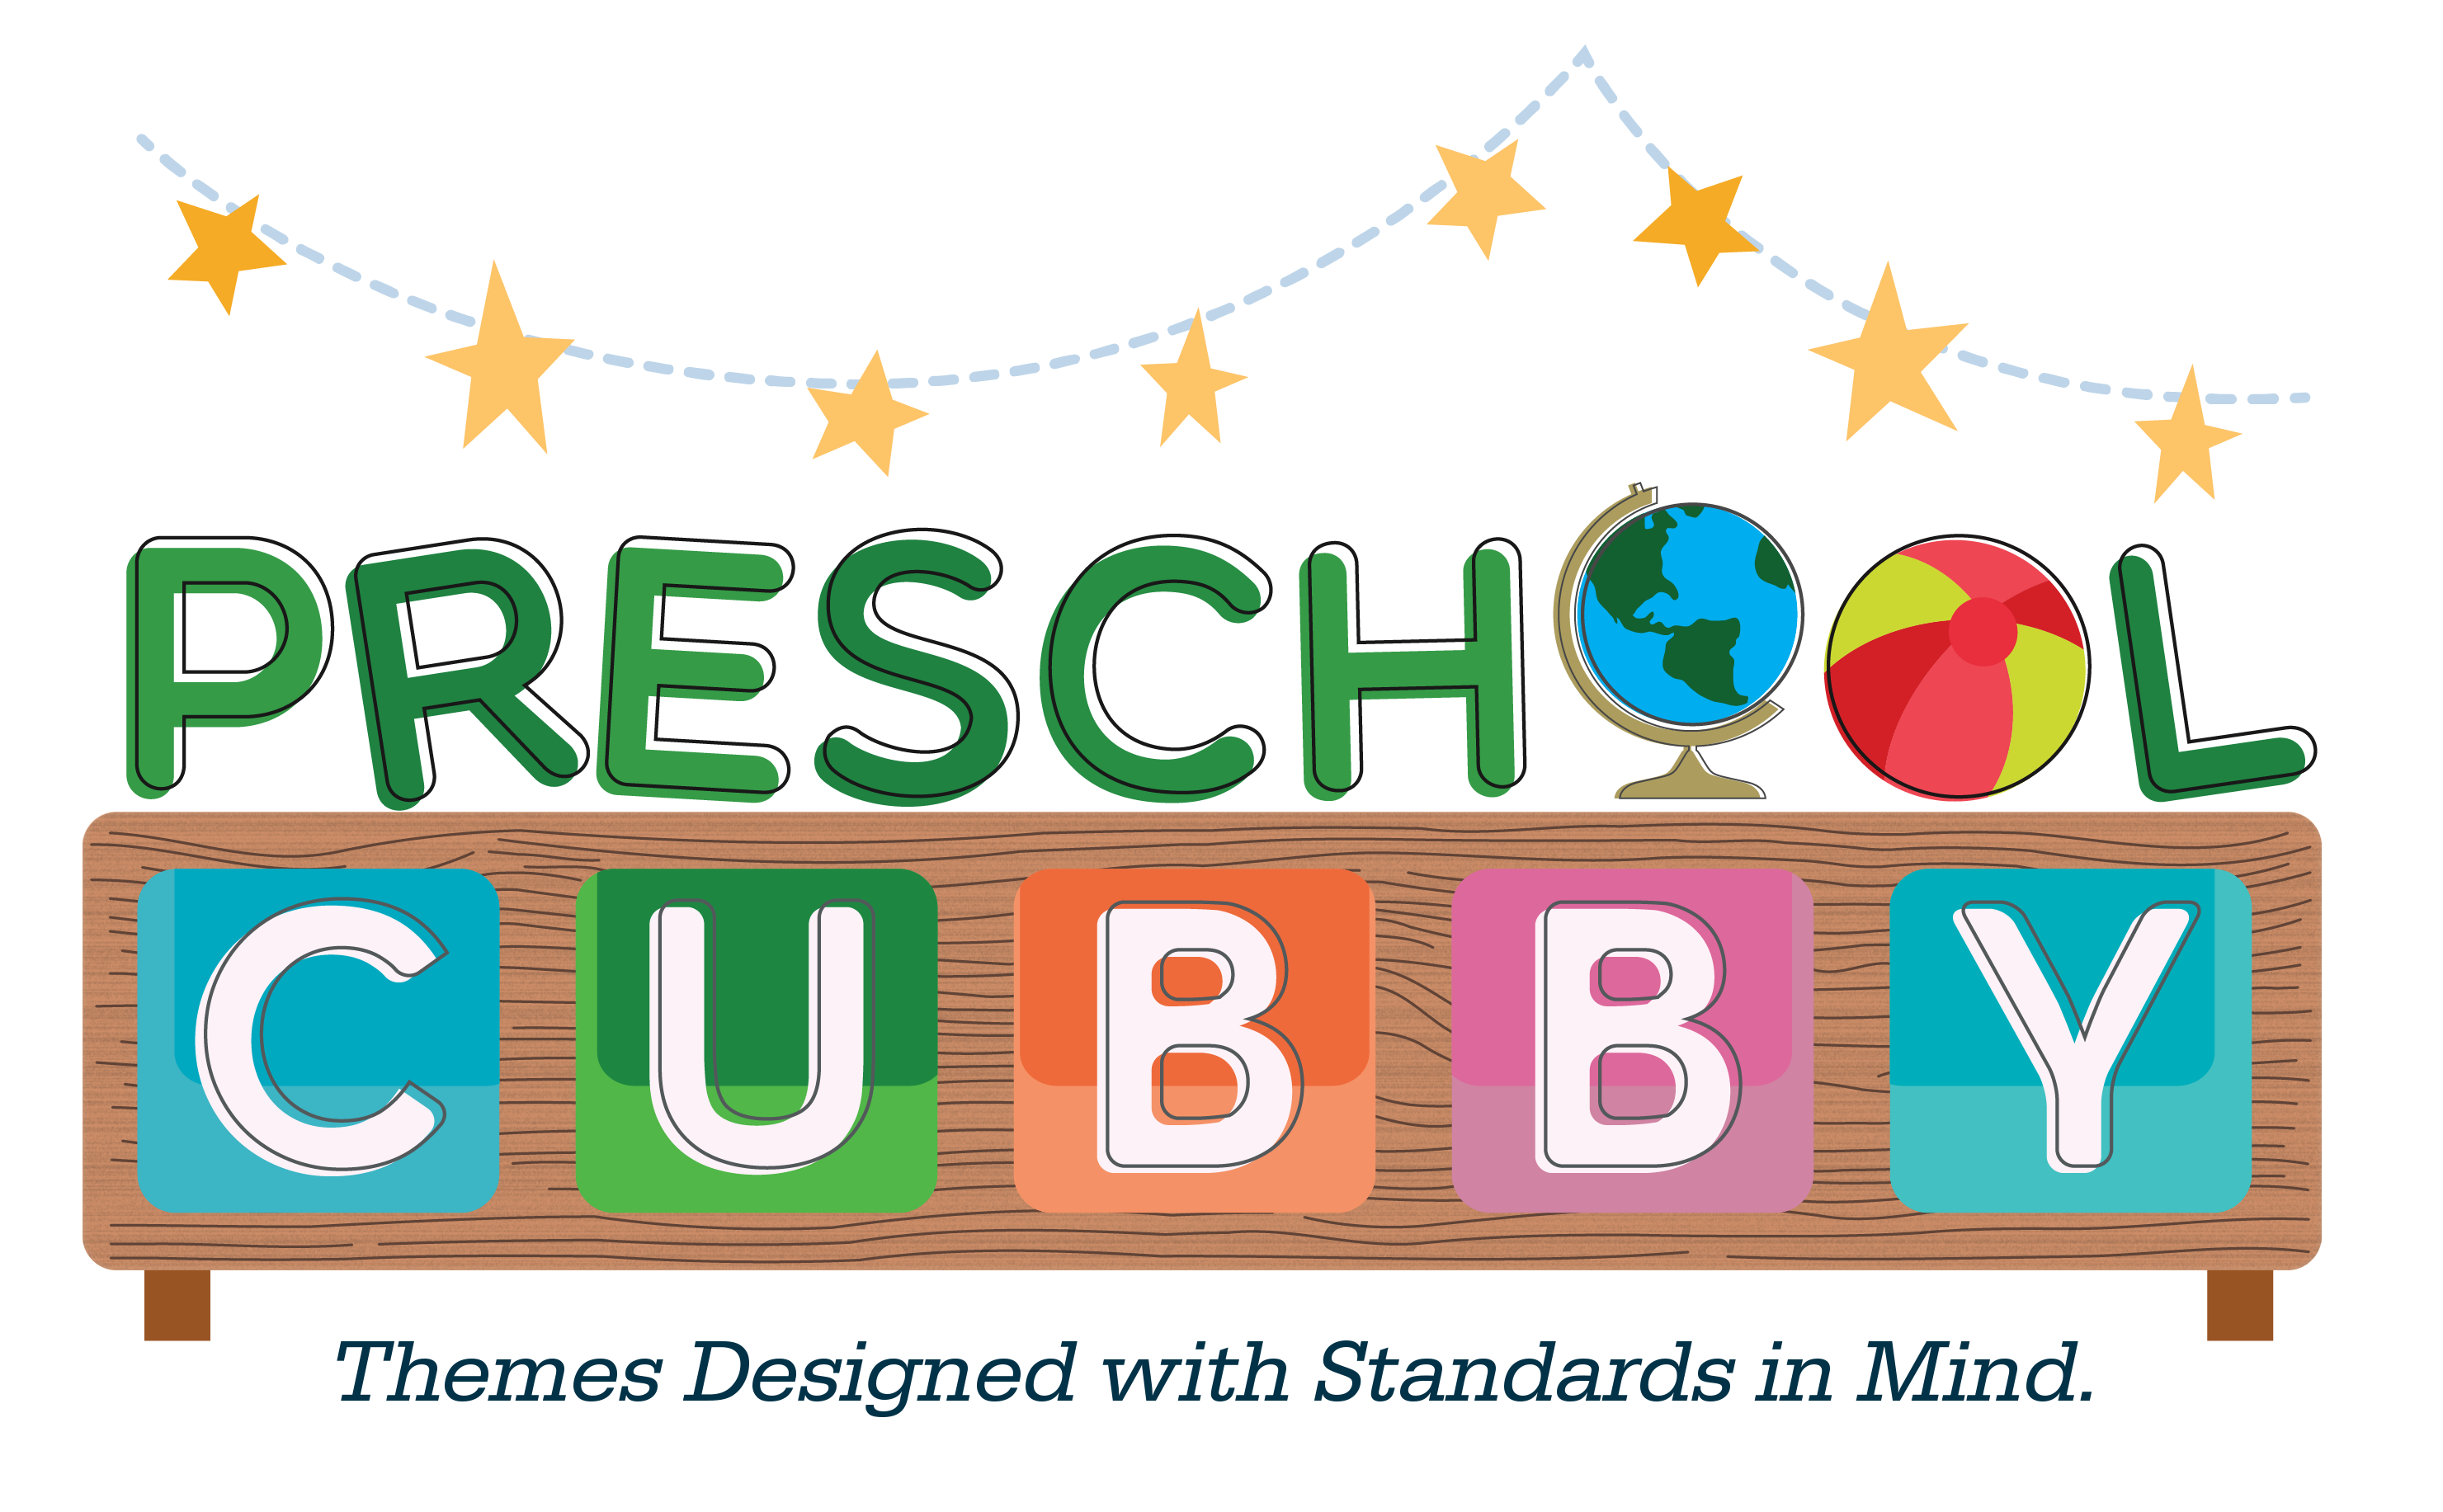 Playdough clipart preschool. Introducing cubby themes designed